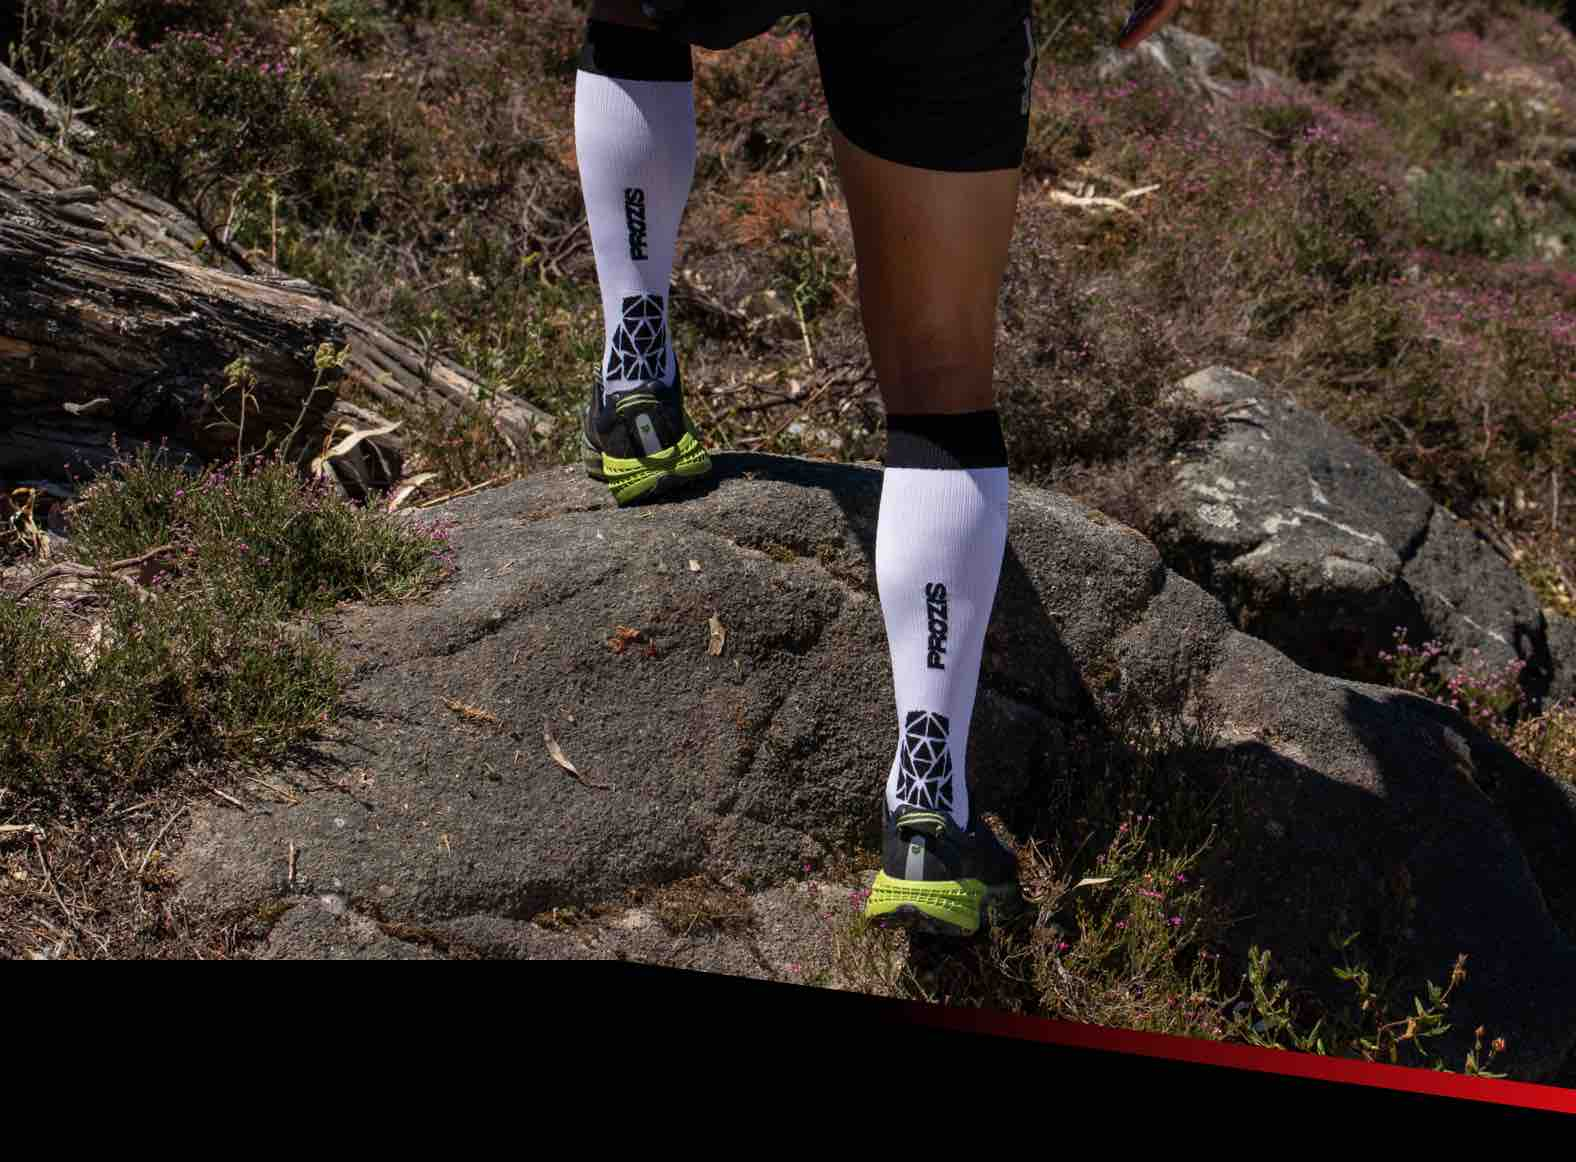 Comptech compression socks